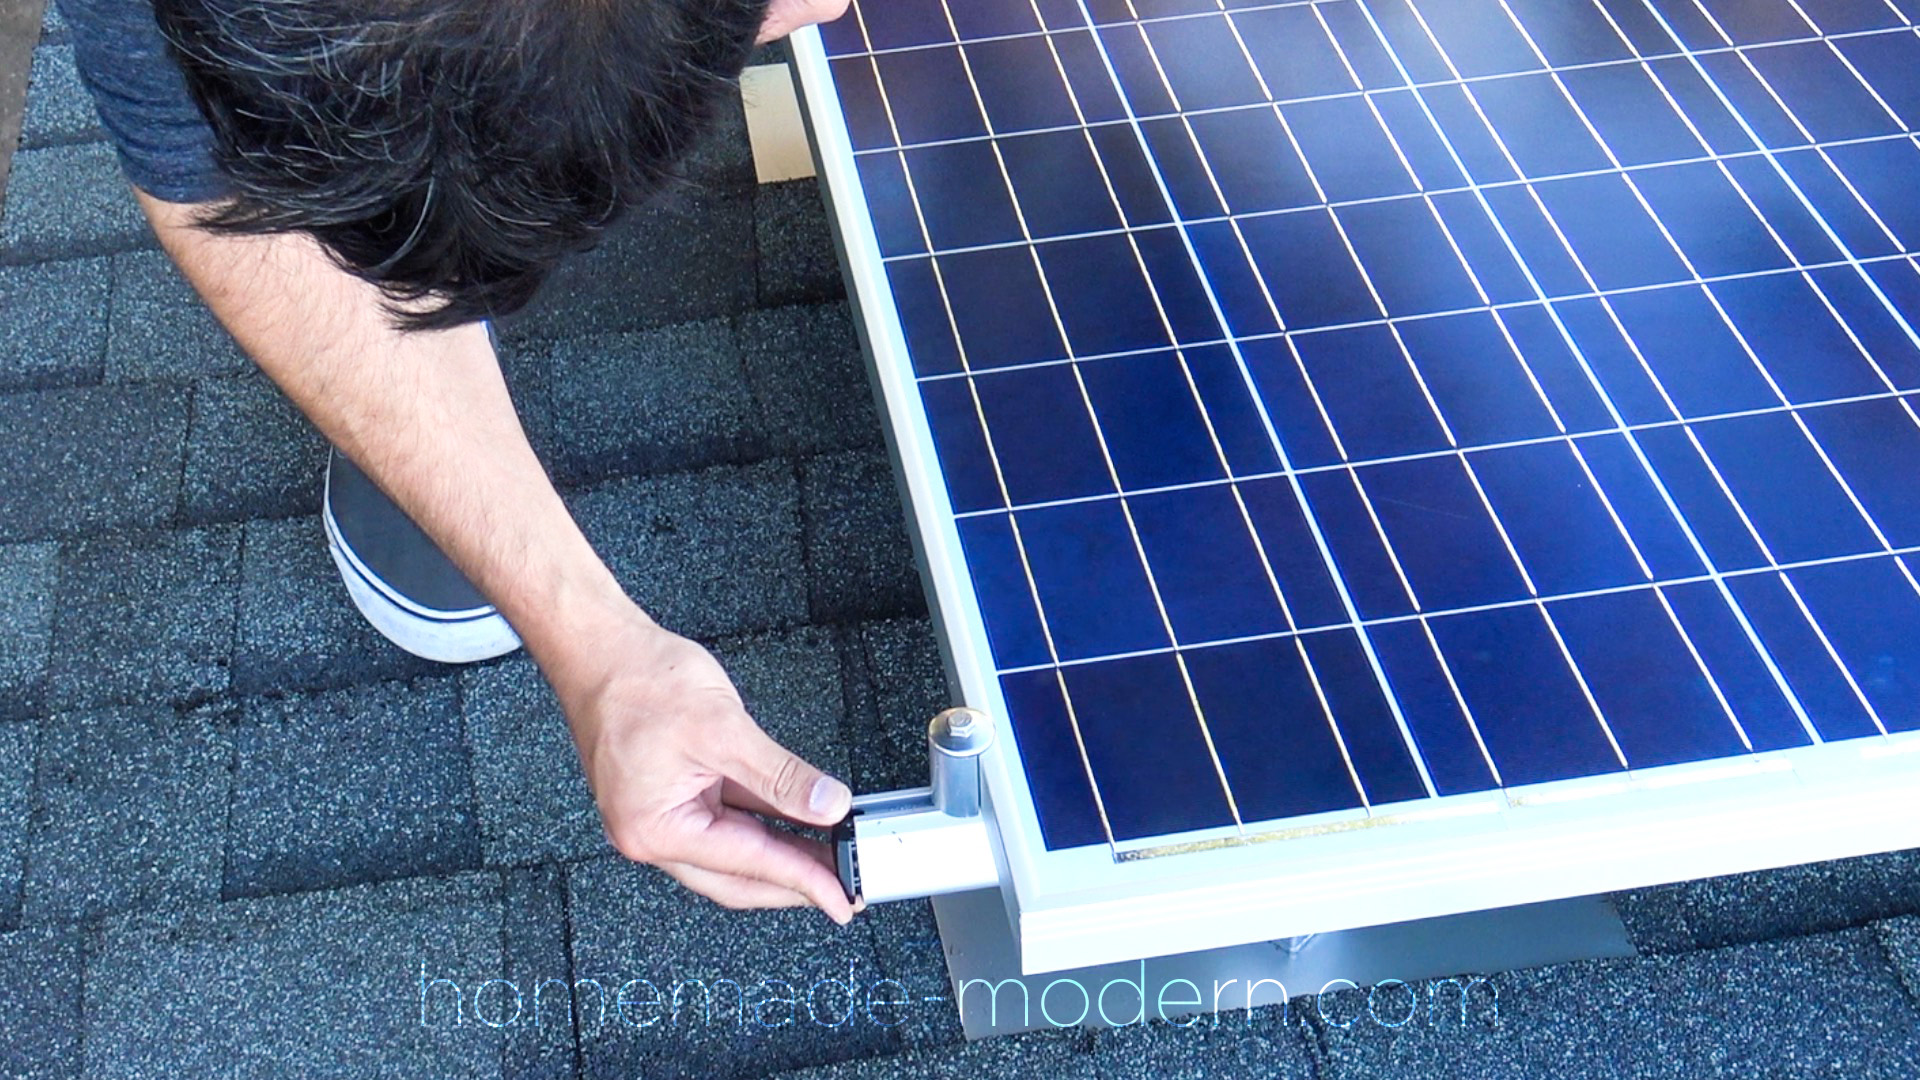 hight resolution of this off the grid solar powered workshop was made by retrofitting a prefabricated shed homemade modern